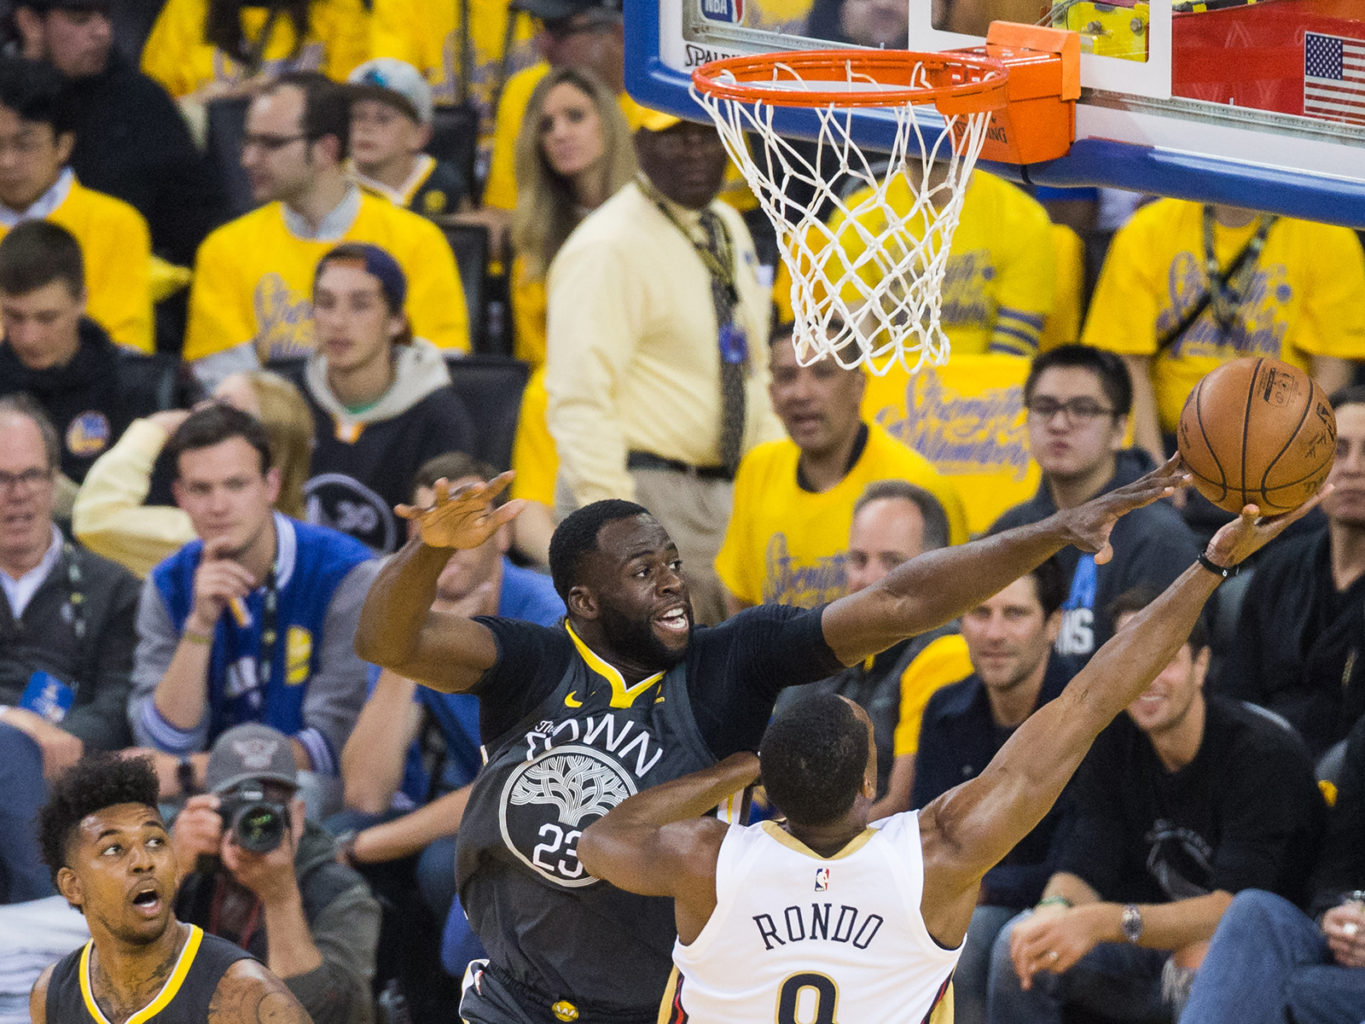 Golden State Warriors forward Draymond Green (23) attempts to block a shot by New Orleans Pelicans guard Rajon Rondo (9) at Oracle Arena during Game 2 of the Western Semifinals in Oakland, California, on May 1, 2018. (Stan Olszewski/Special to S.F. Examiner)